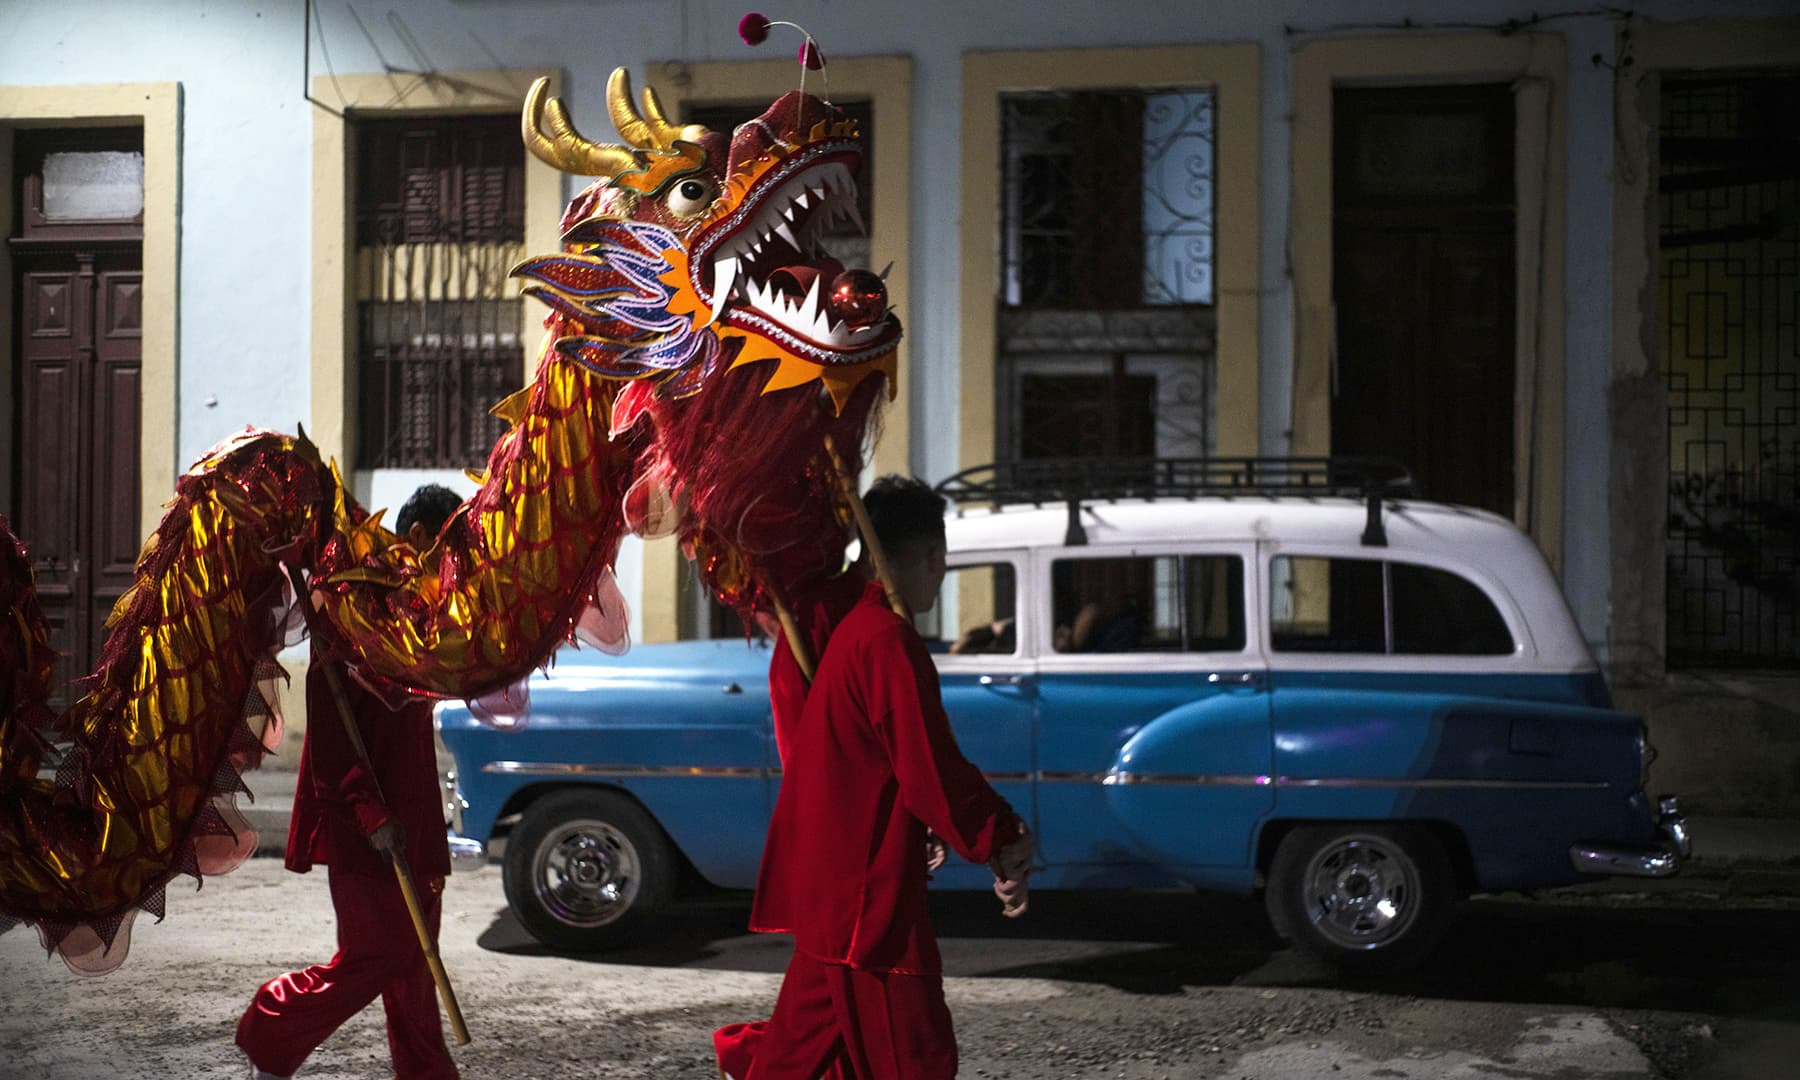 Dancers from the Cuban Wushu Association return home after performing during the ceremony to welcome the Chinese New Year in Havana, Cuba on January 24, 2020. — AP